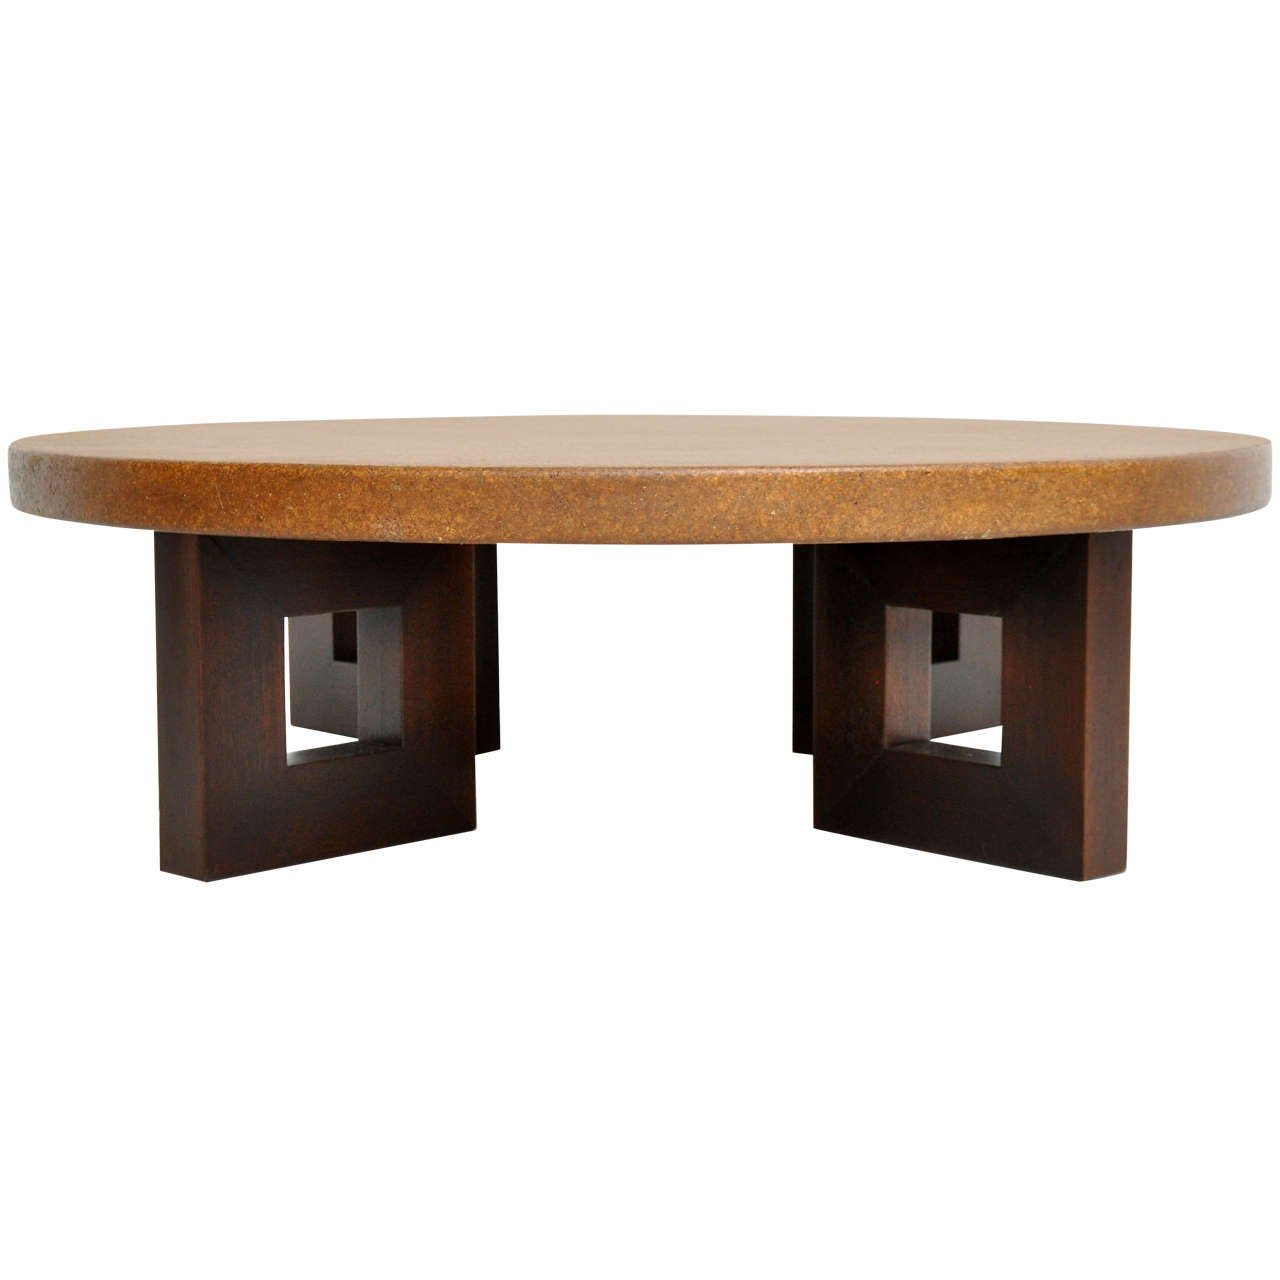 Cork top coffee table paul frankl at 1stdibs cork top coffee table paul frankl 1 geotapseo Gallery